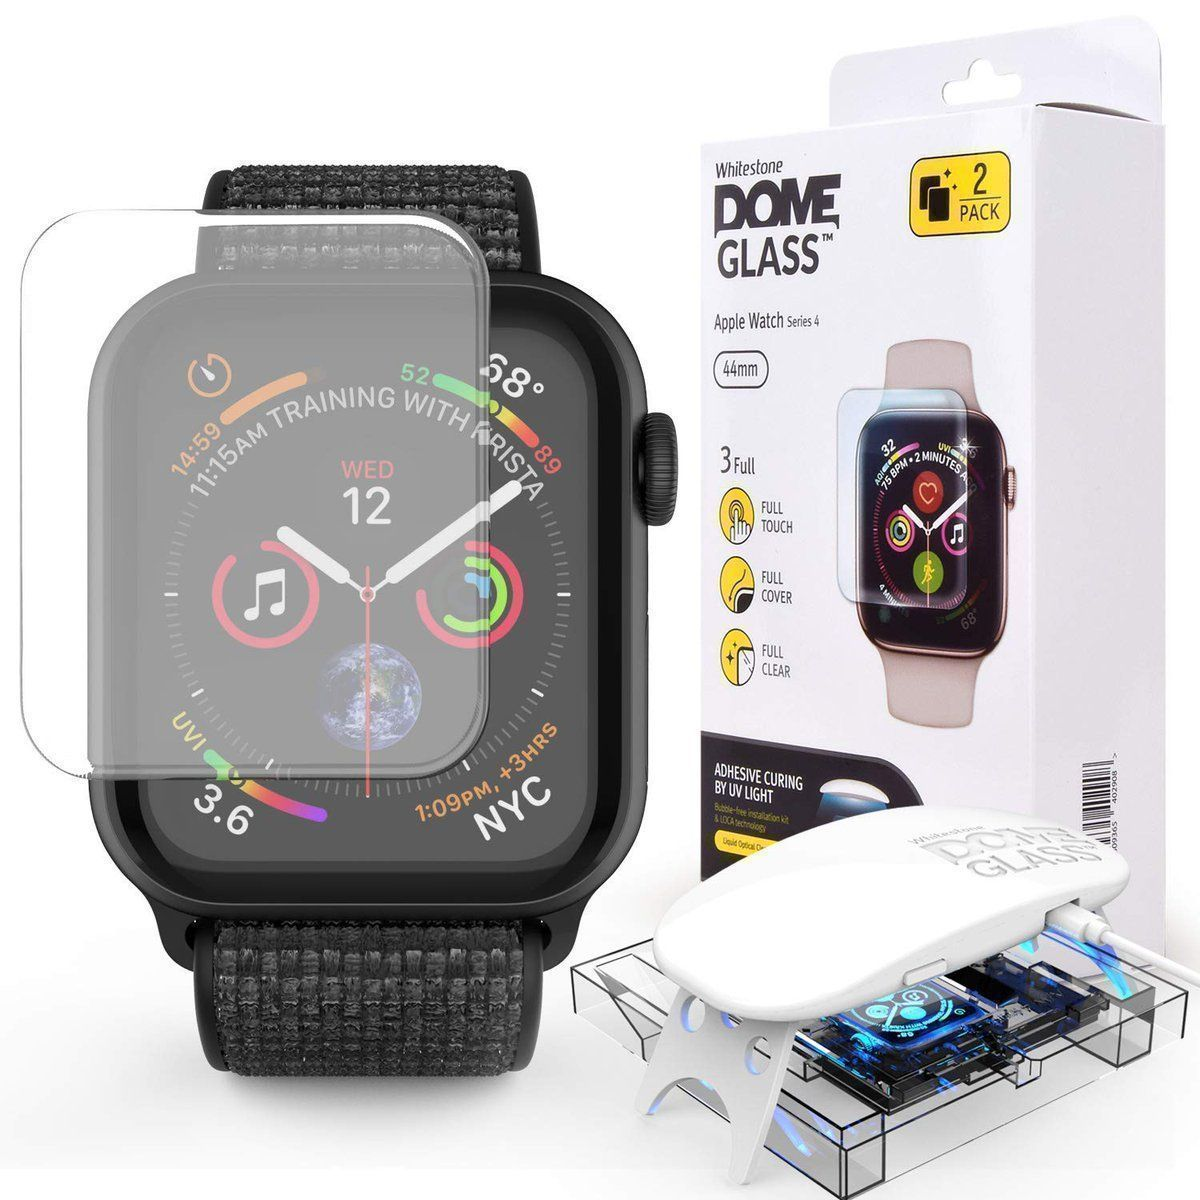 #whitestonedomeglass welcomes off-line business partners all over the world!! For details:  https:// buff.ly/2SfjXT4  &nbsp;      #Amazon storefront:  https:// buff.ly/2VNv8F2  &nbsp;      We are the member of SMAPP(Samsung Mobile Accessory Partnership Program) with LOCA tech!! #Applewatch4 #Galaxynote9 <br>http://pic.twitter.com/vKu3lyQSkG